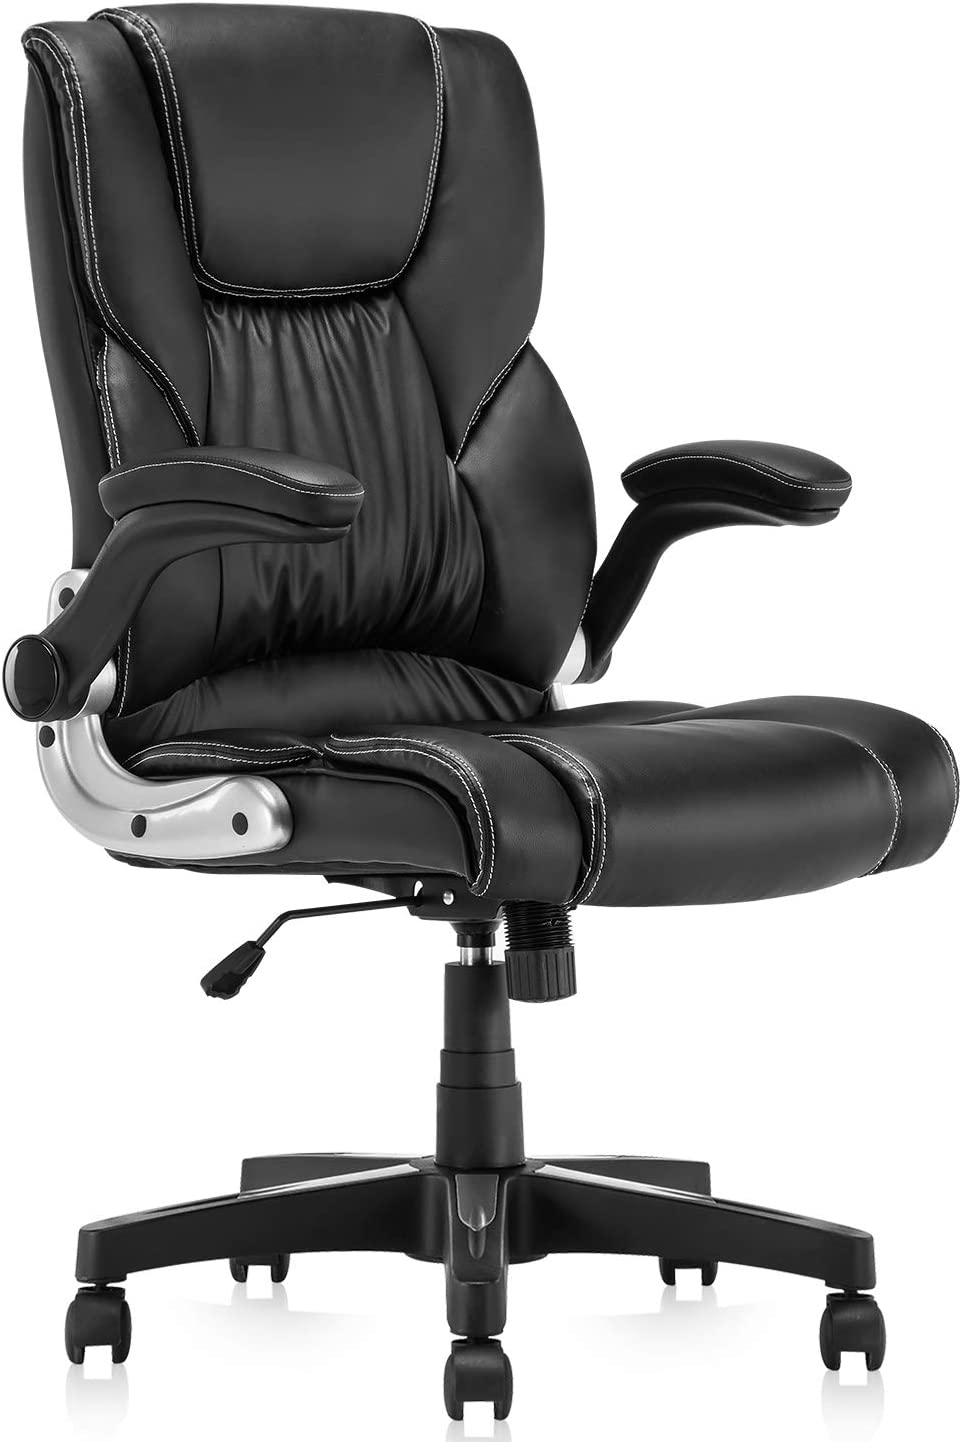 Ergonomic Home Office Chair- Adjustable High-Back Computer Desk Chair Swivel Executive Chair PU Leather Gaming Chair with Armrest, Black